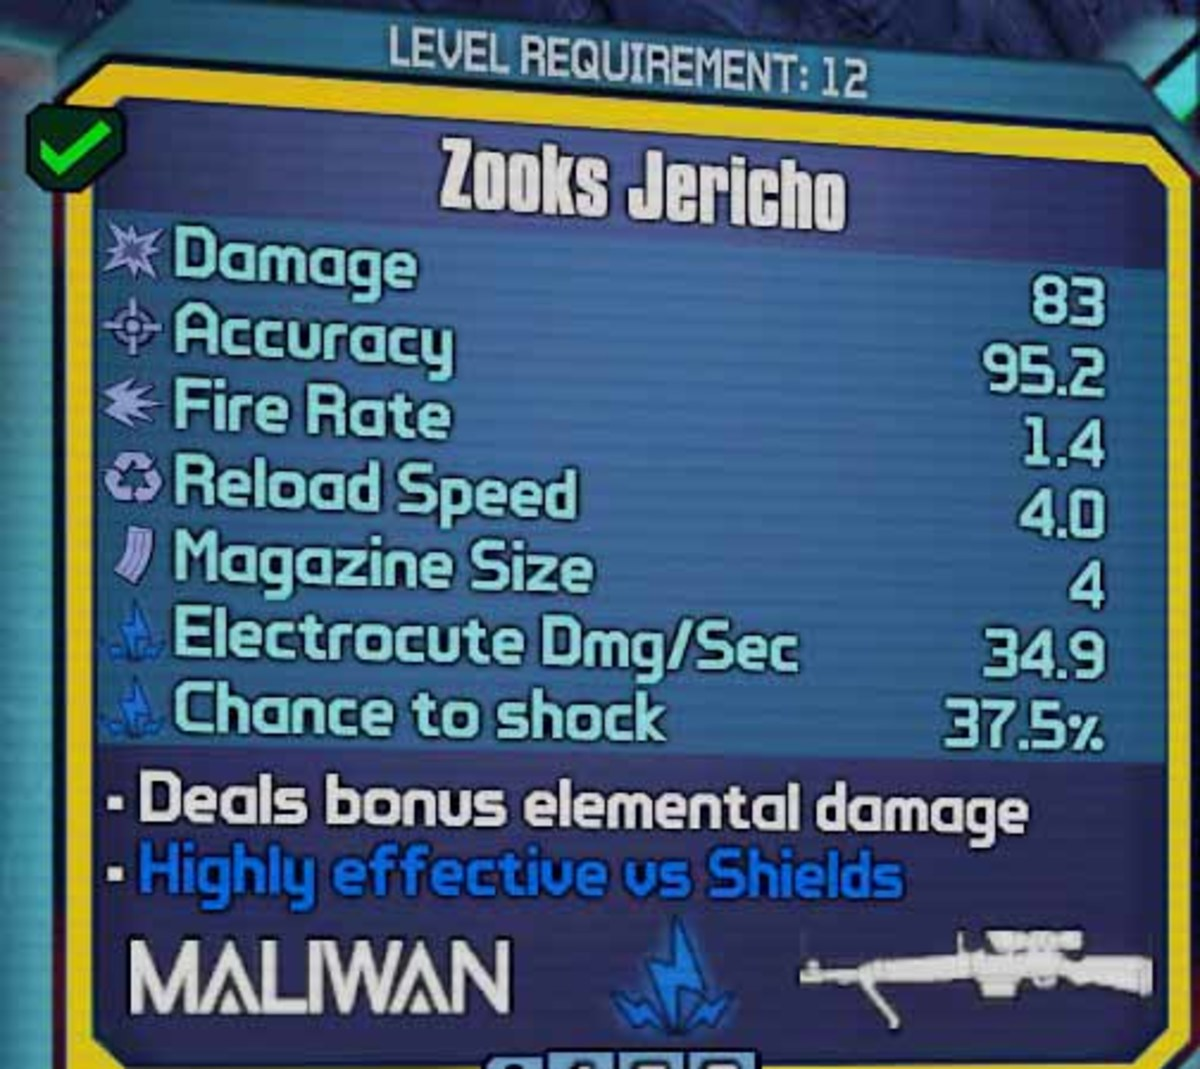 Borderlands 2 Zooks Jericho - an example of an electric elemental weapon to take down shields.